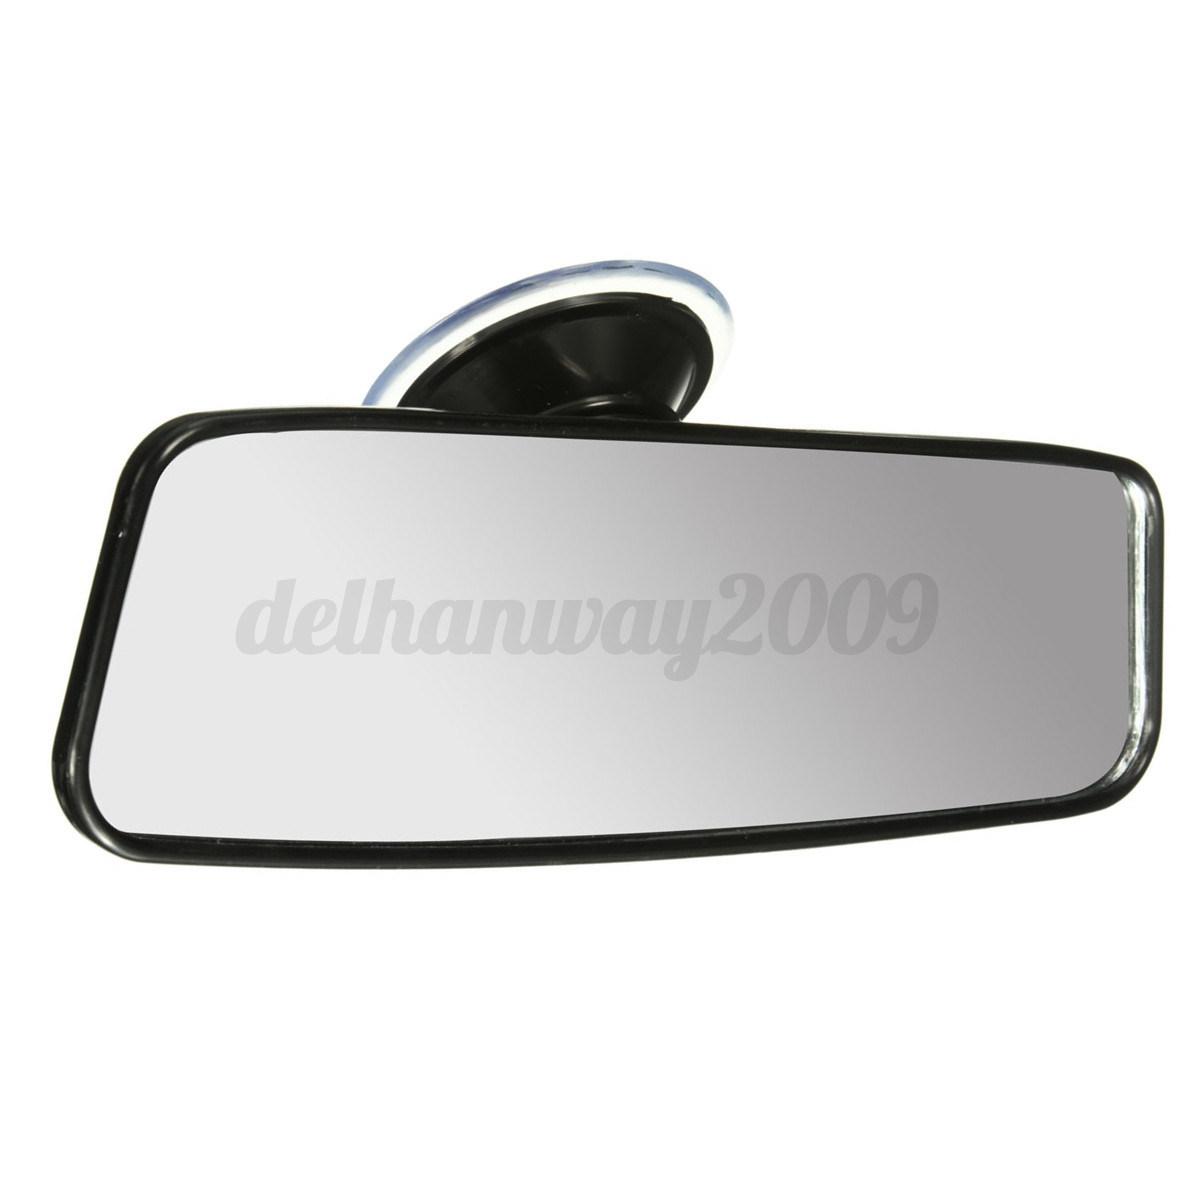 windscreen suction stick on interior rear view mirror car learner adjustable new ebay. Black Bedroom Furniture Sets. Home Design Ideas